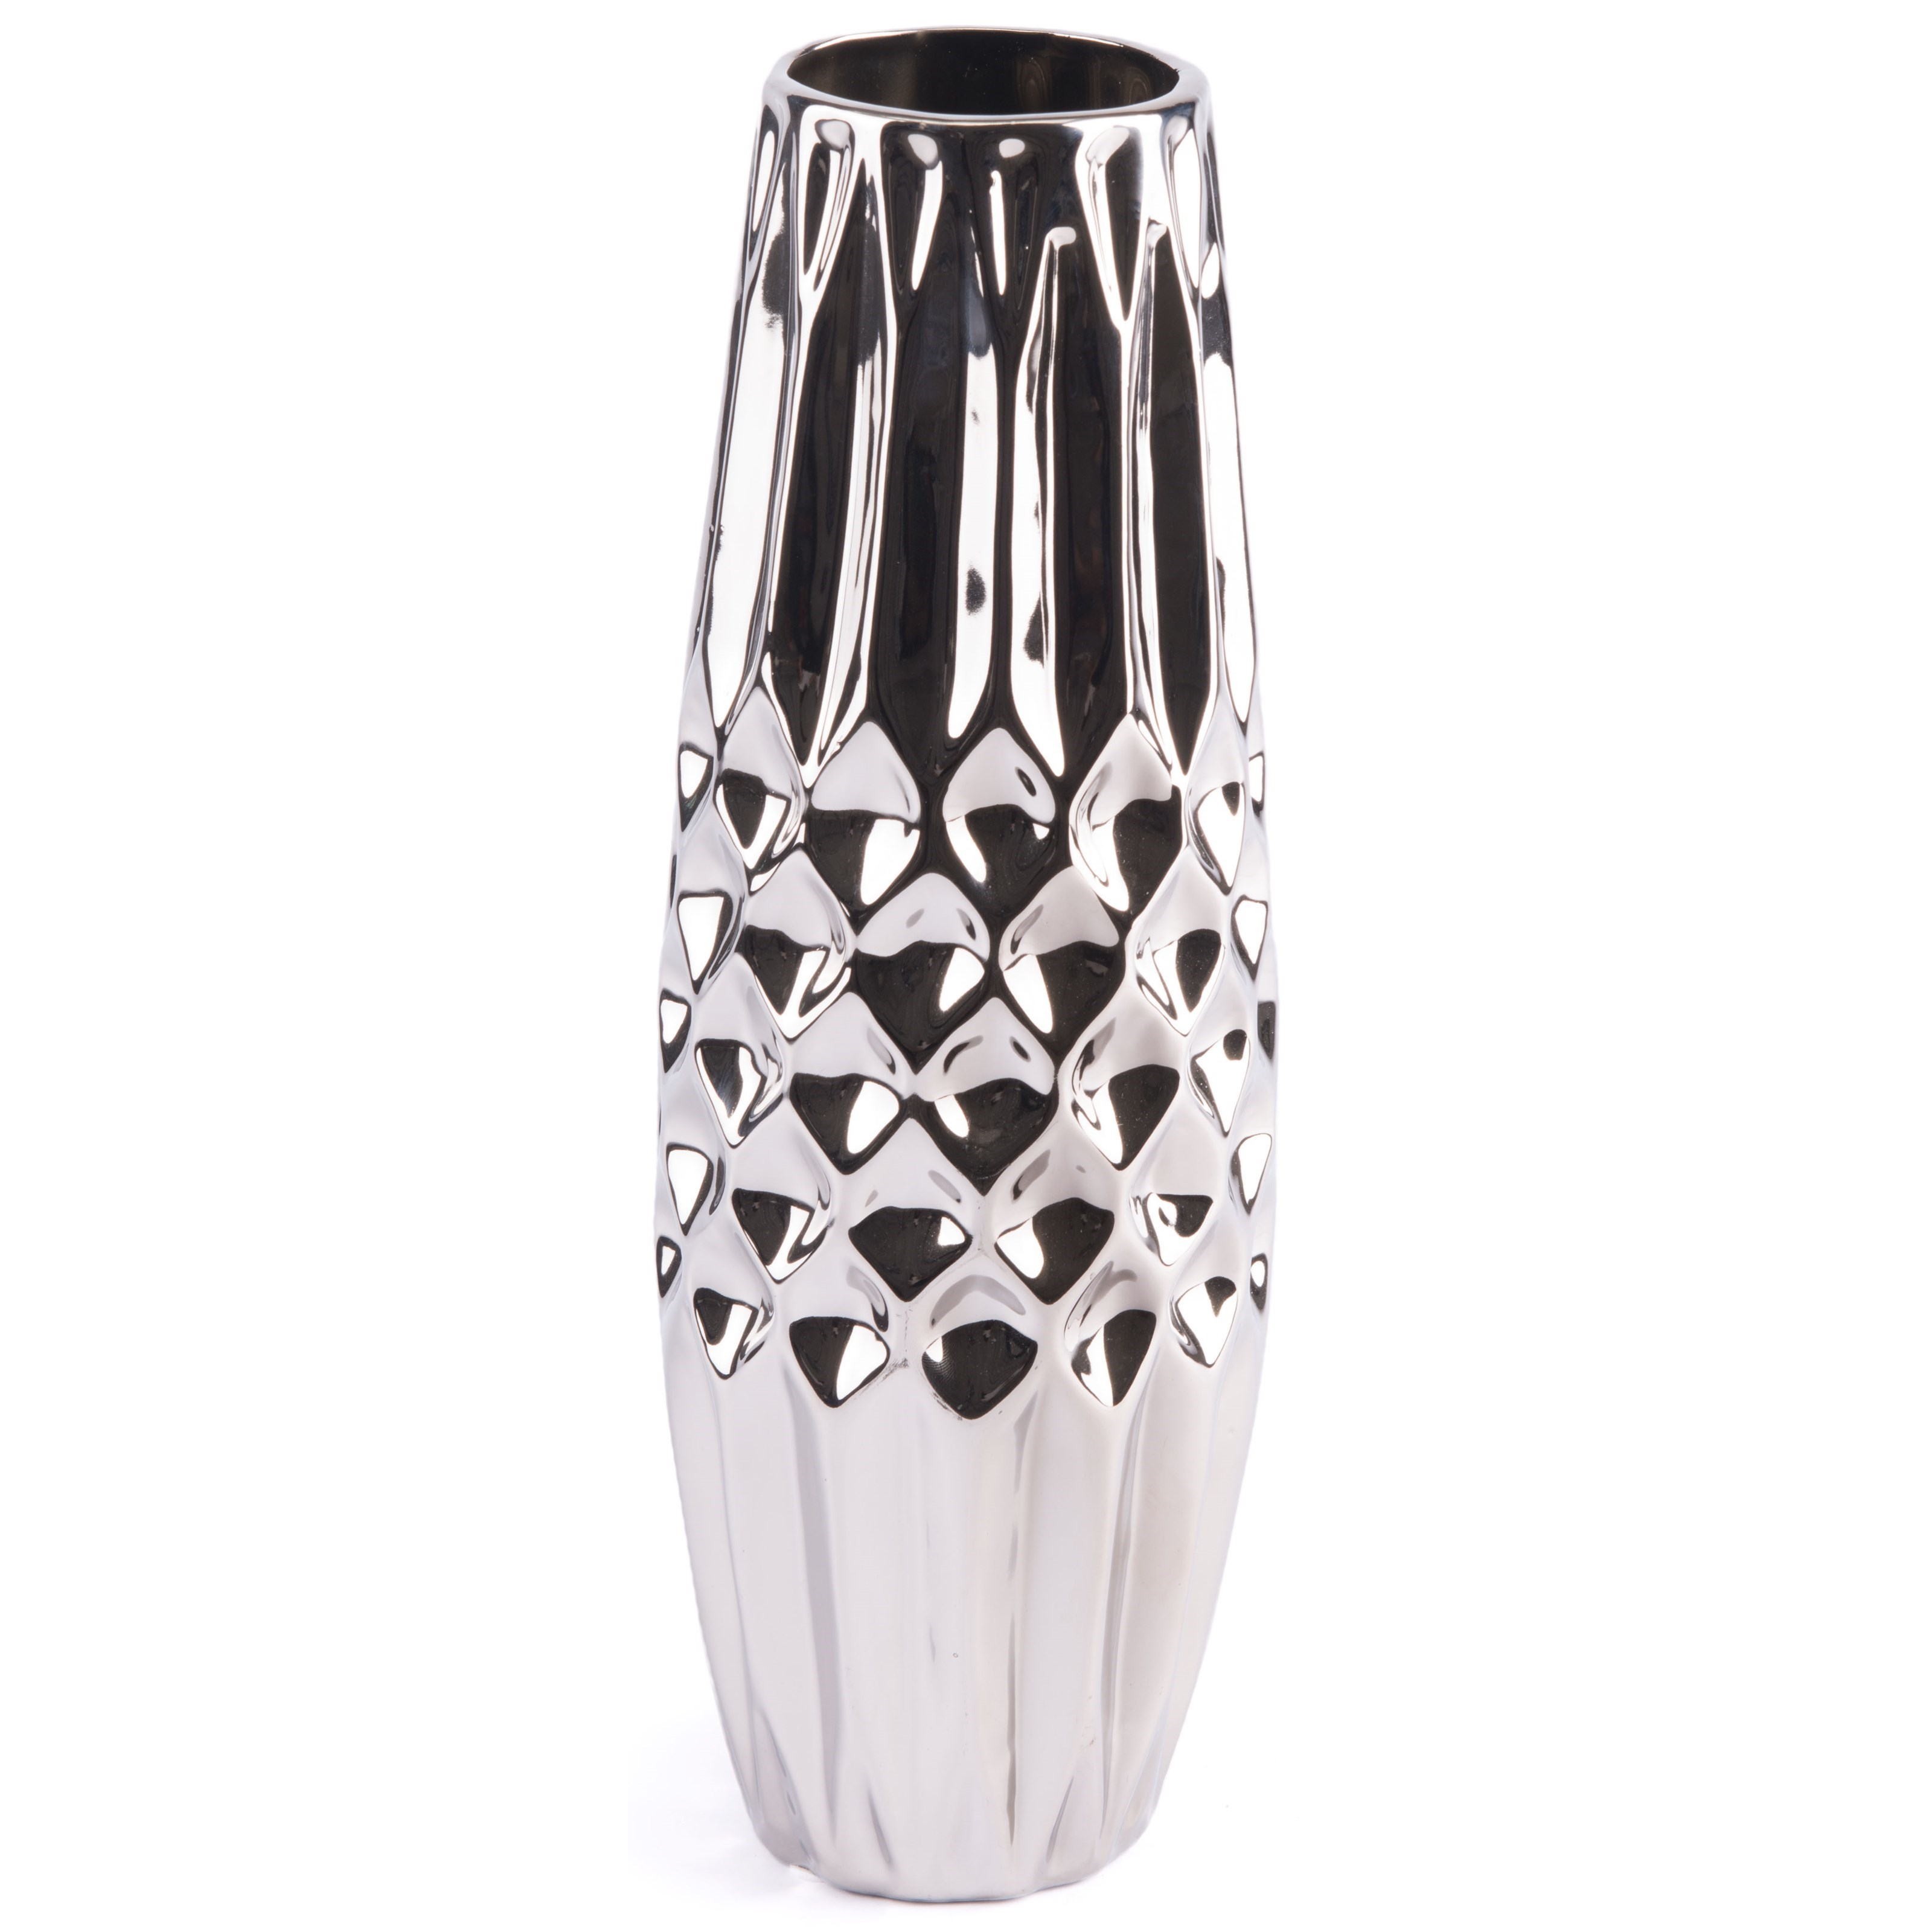 Vases Silver Medium Vase by Zuo at Nassau Furniture and Mattress